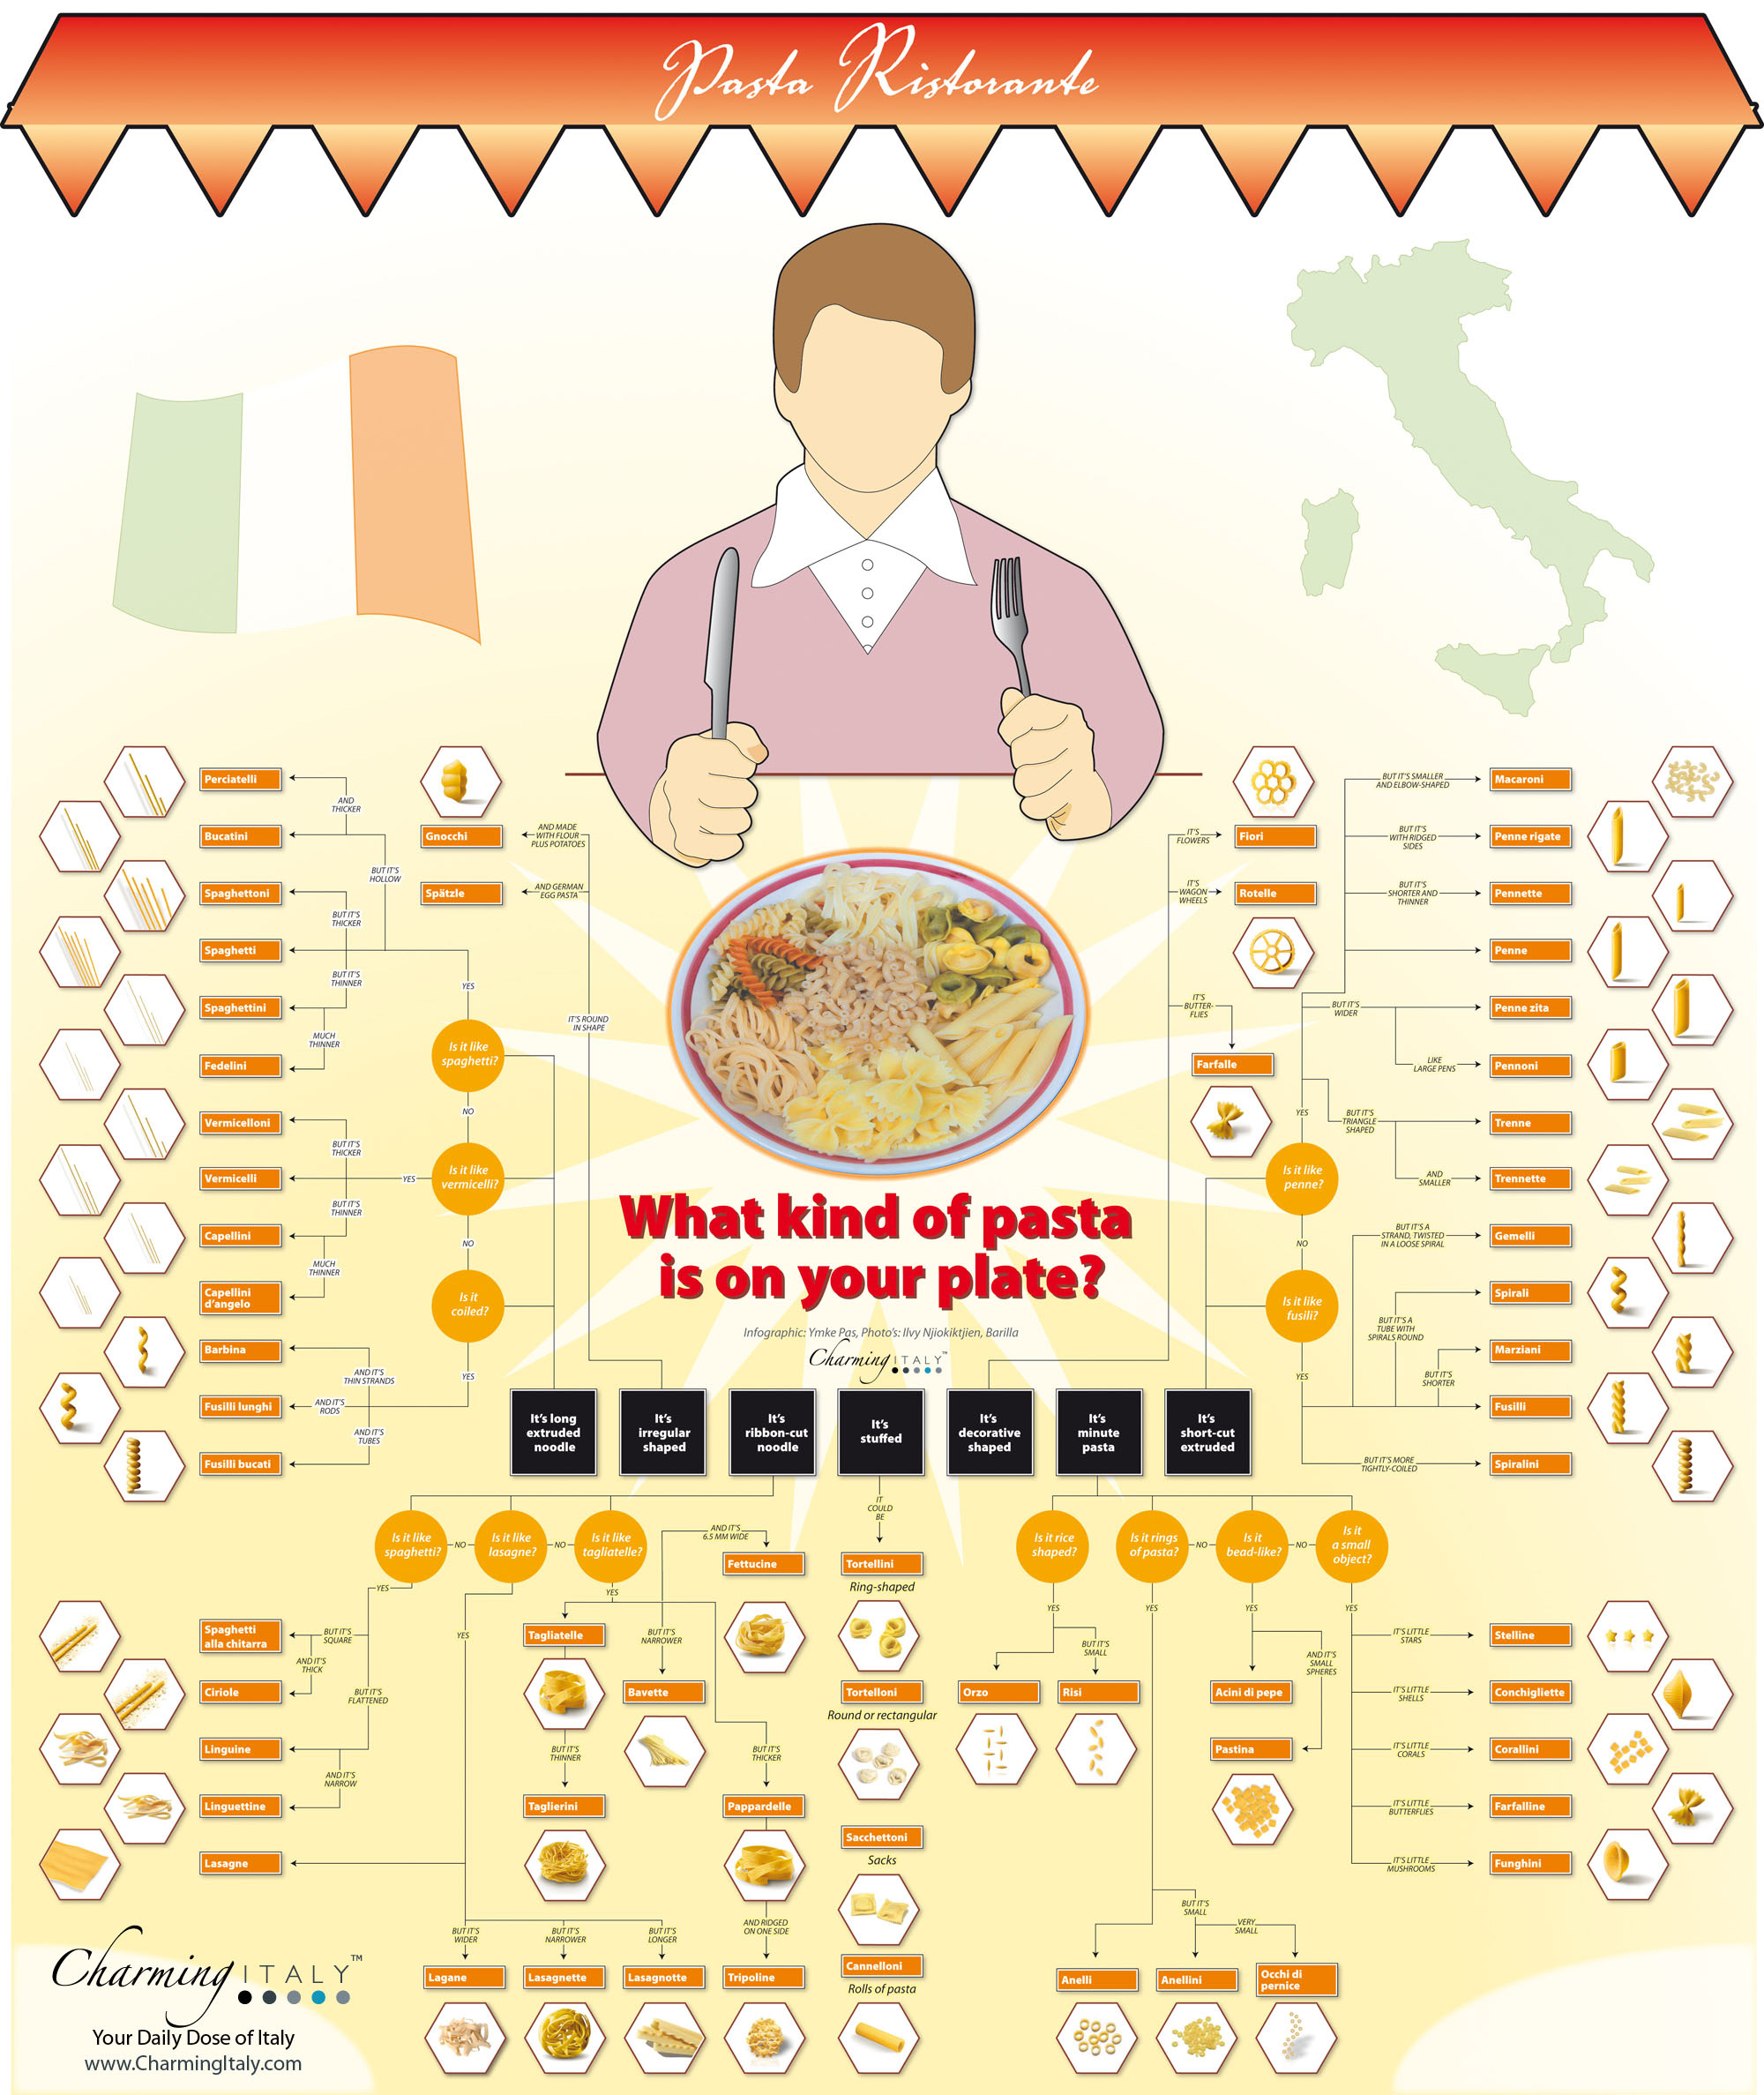 The Different Types of Pasta - an Infographic